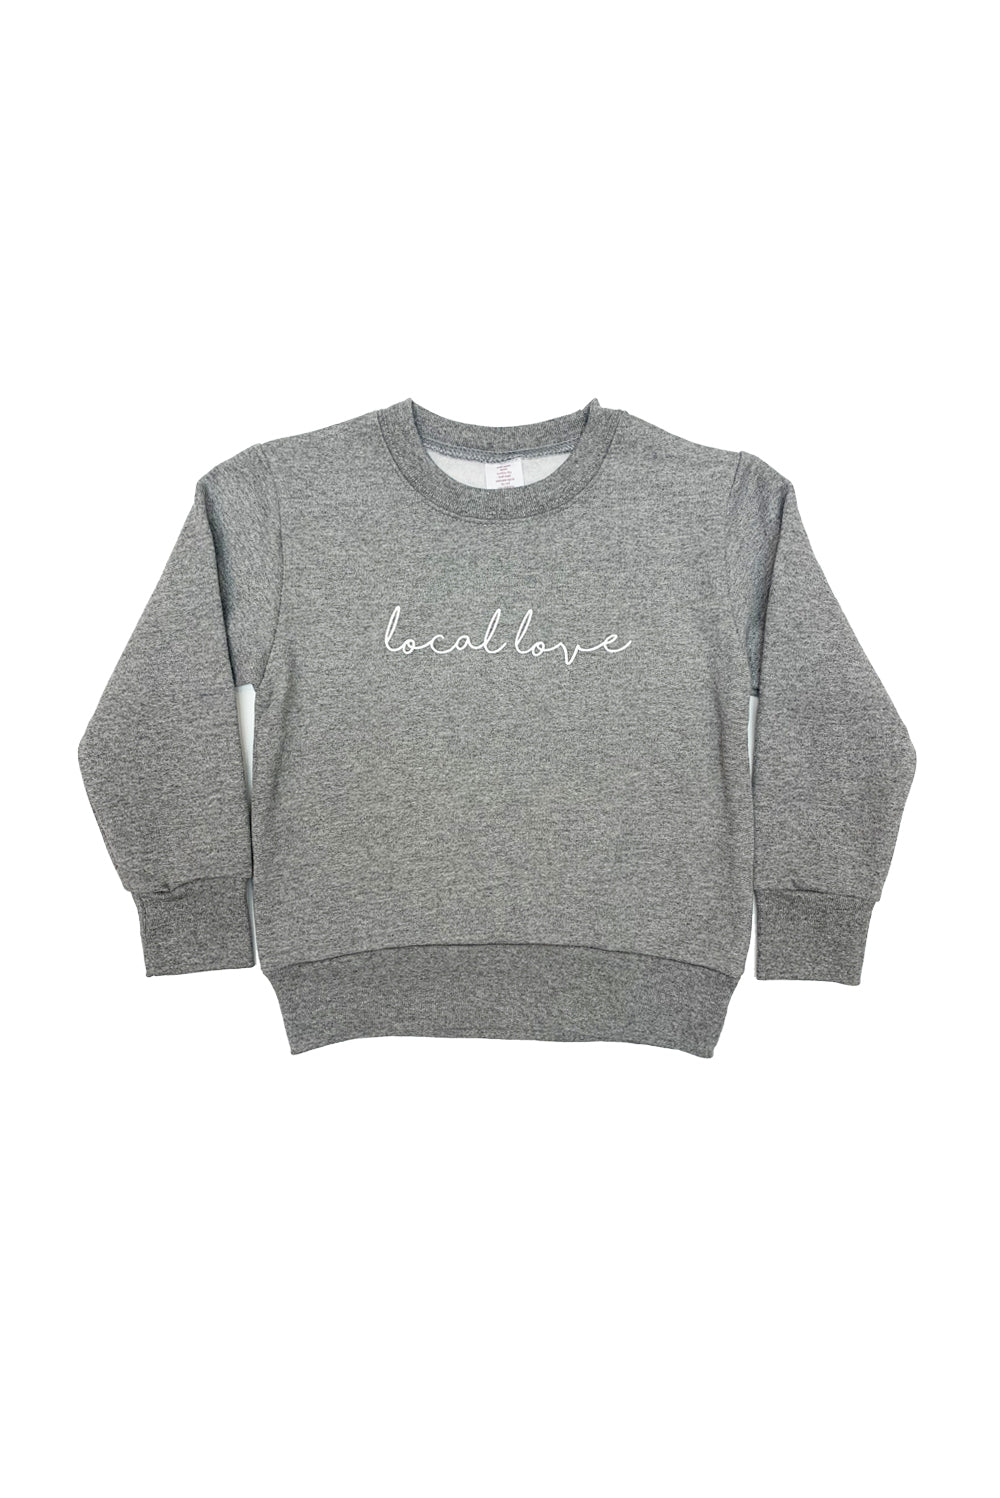 CHILD LOCAL LOVE SCRIPT CREWNECK HEATHER GREY